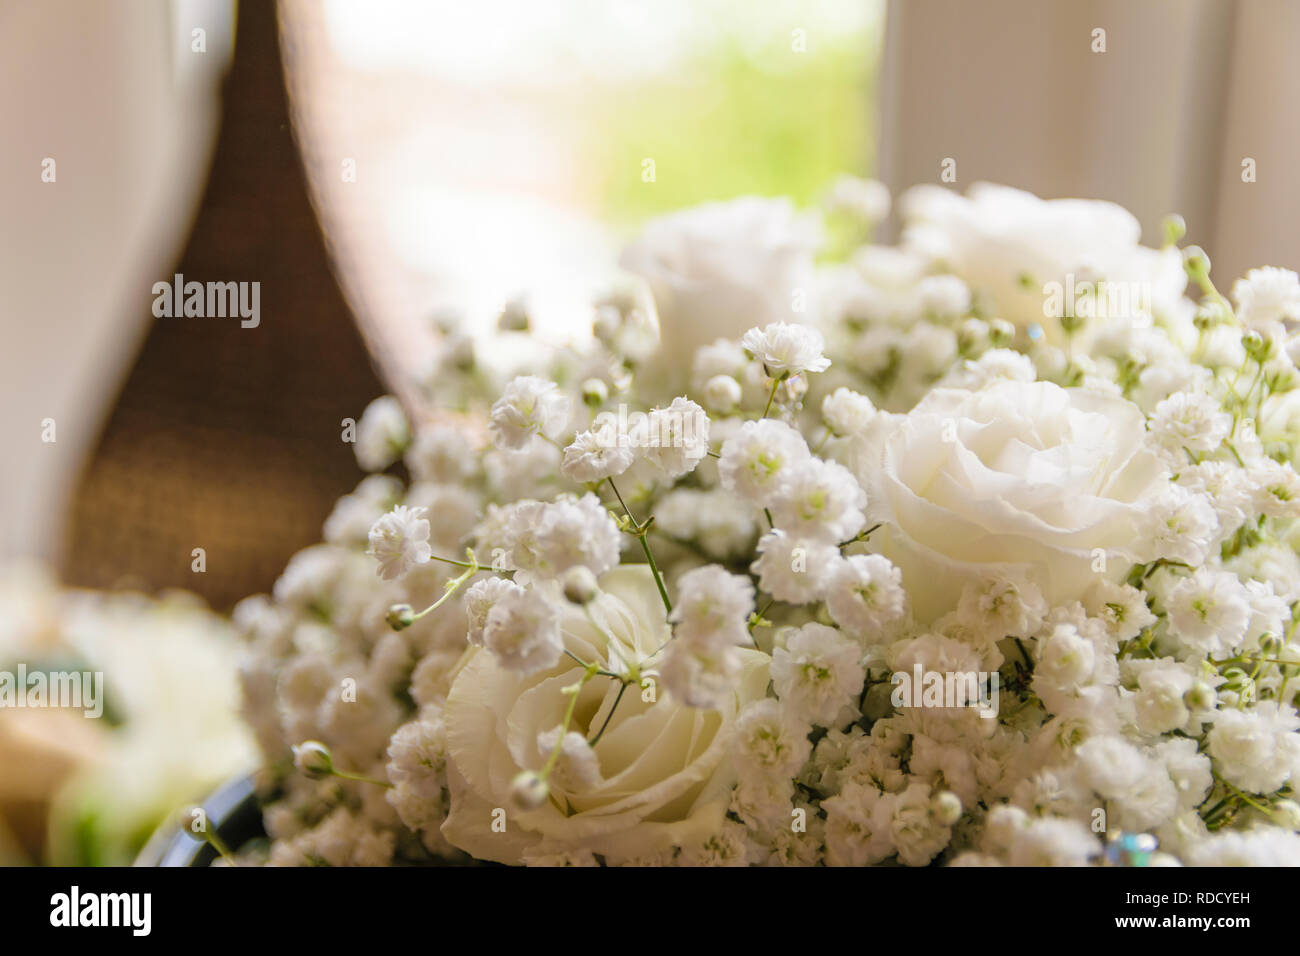 A bouquet of wedding flowers, the white roses shining in the sunlight through the window. - Stock Image